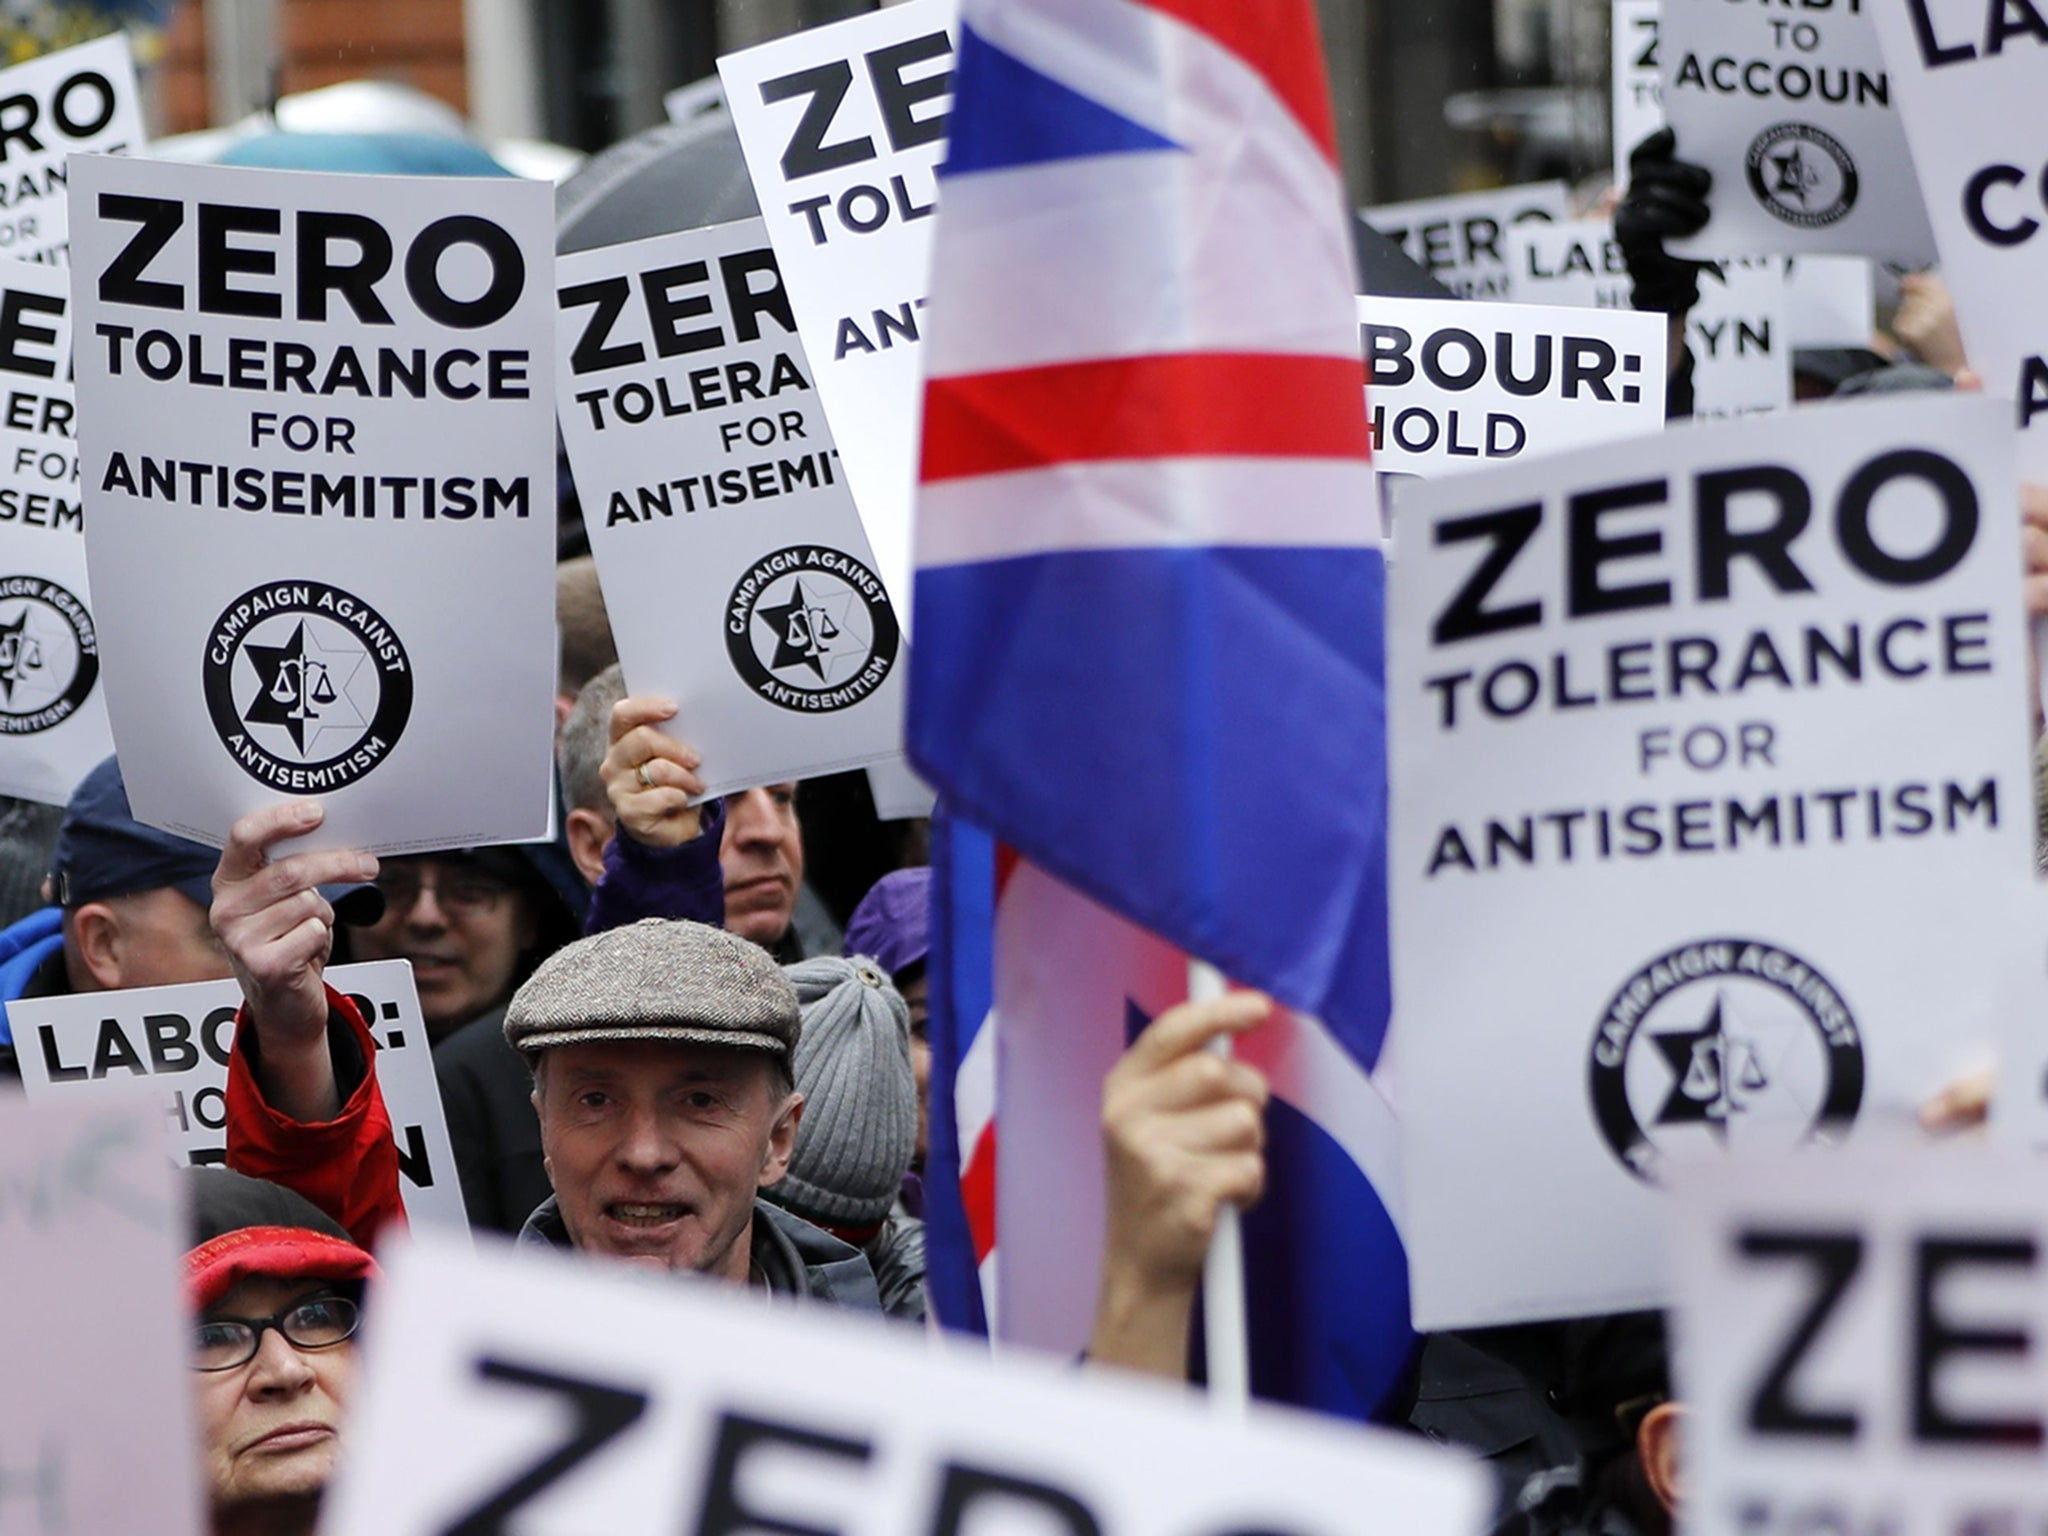 The Labour Party's antisemitism problem might lie in a simple clash of identities